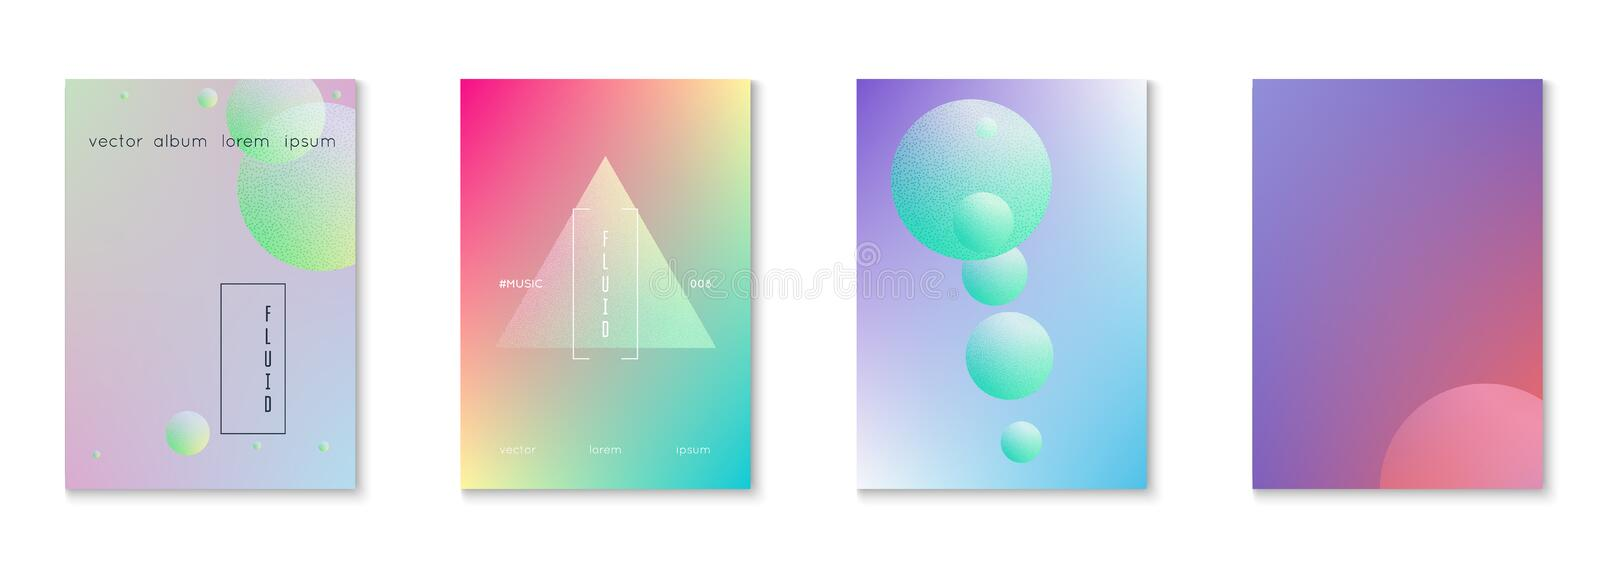 Fluid poster set with round shapes vector illustration